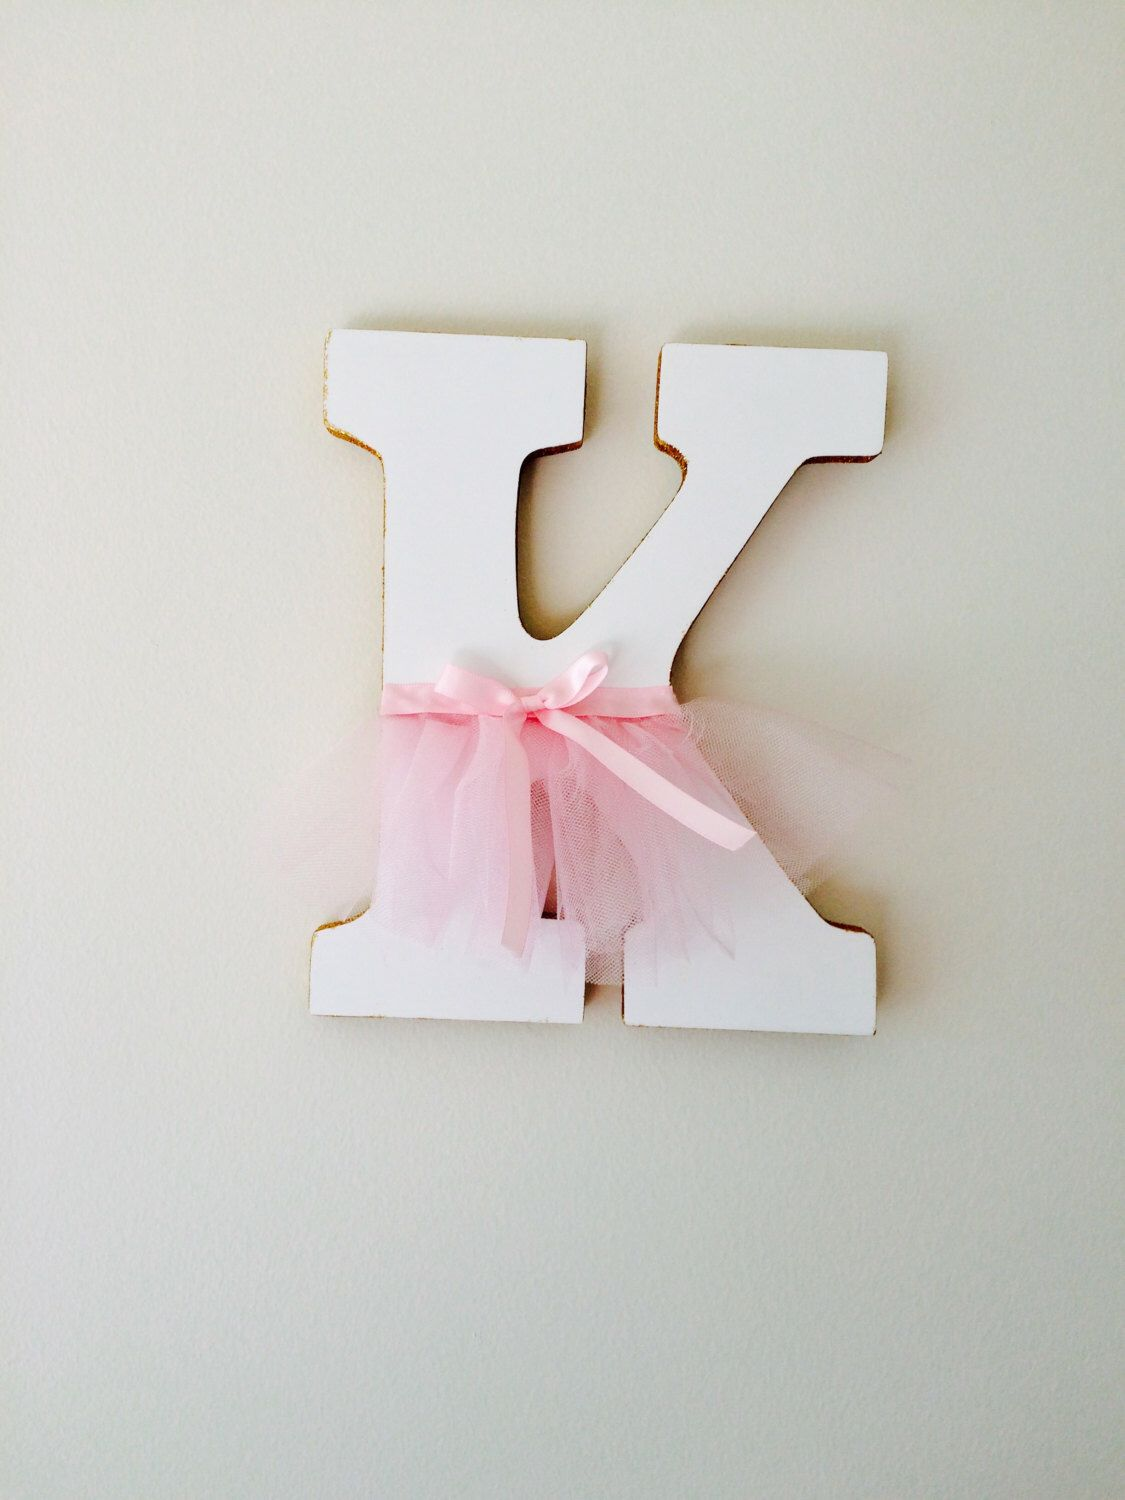 Pin By Natalie Nicholson On Ryleigh S Room